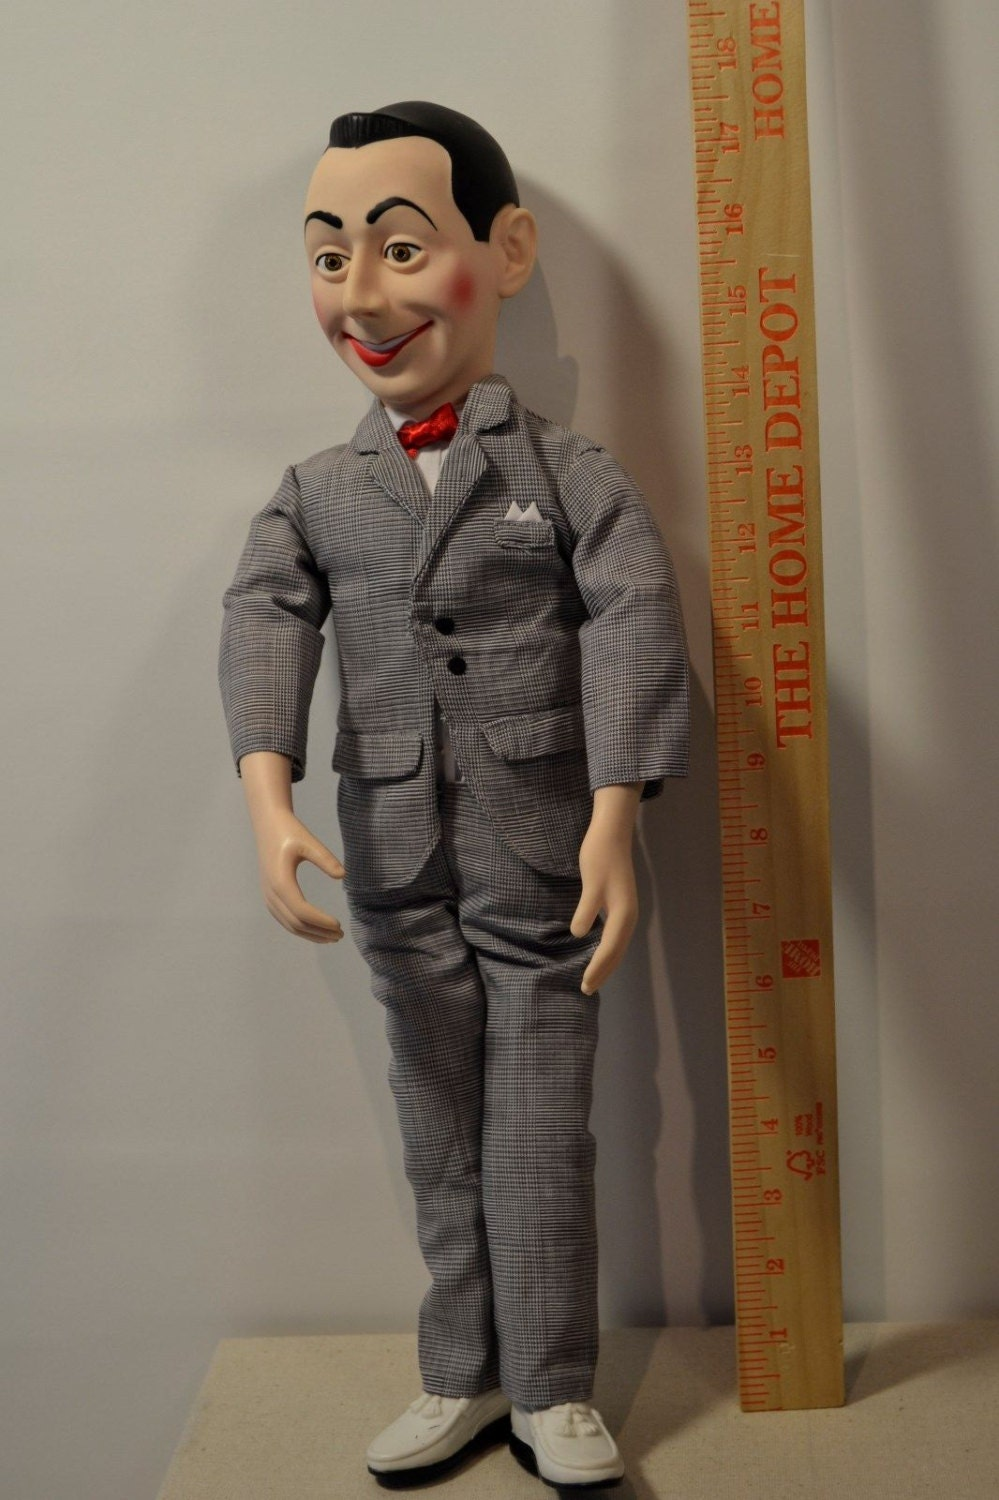 pee wee herman talking pullstring doll by houseofbuckles on etsy. Black Bedroom Furniture Sets. Home Design Ideas